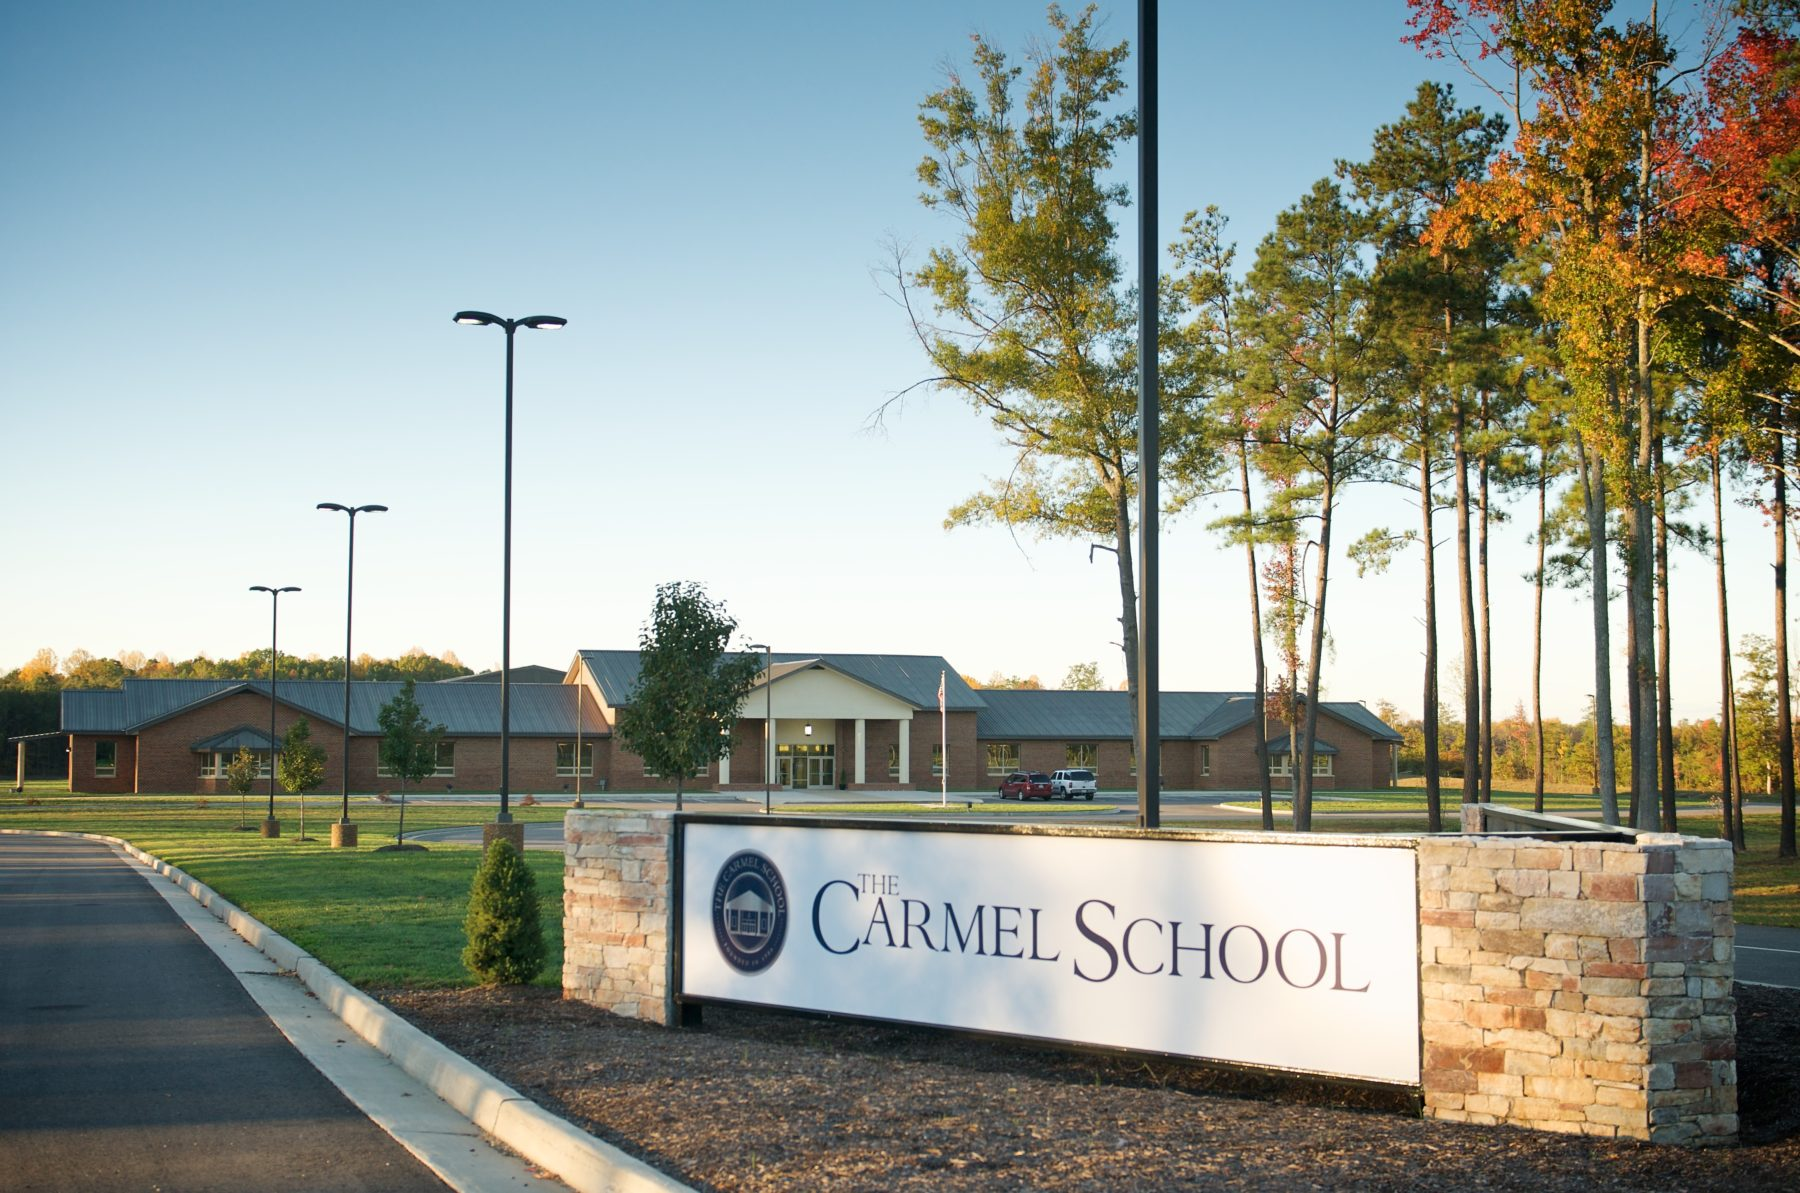 The Carmel School Enrollment And Campus Are Growing